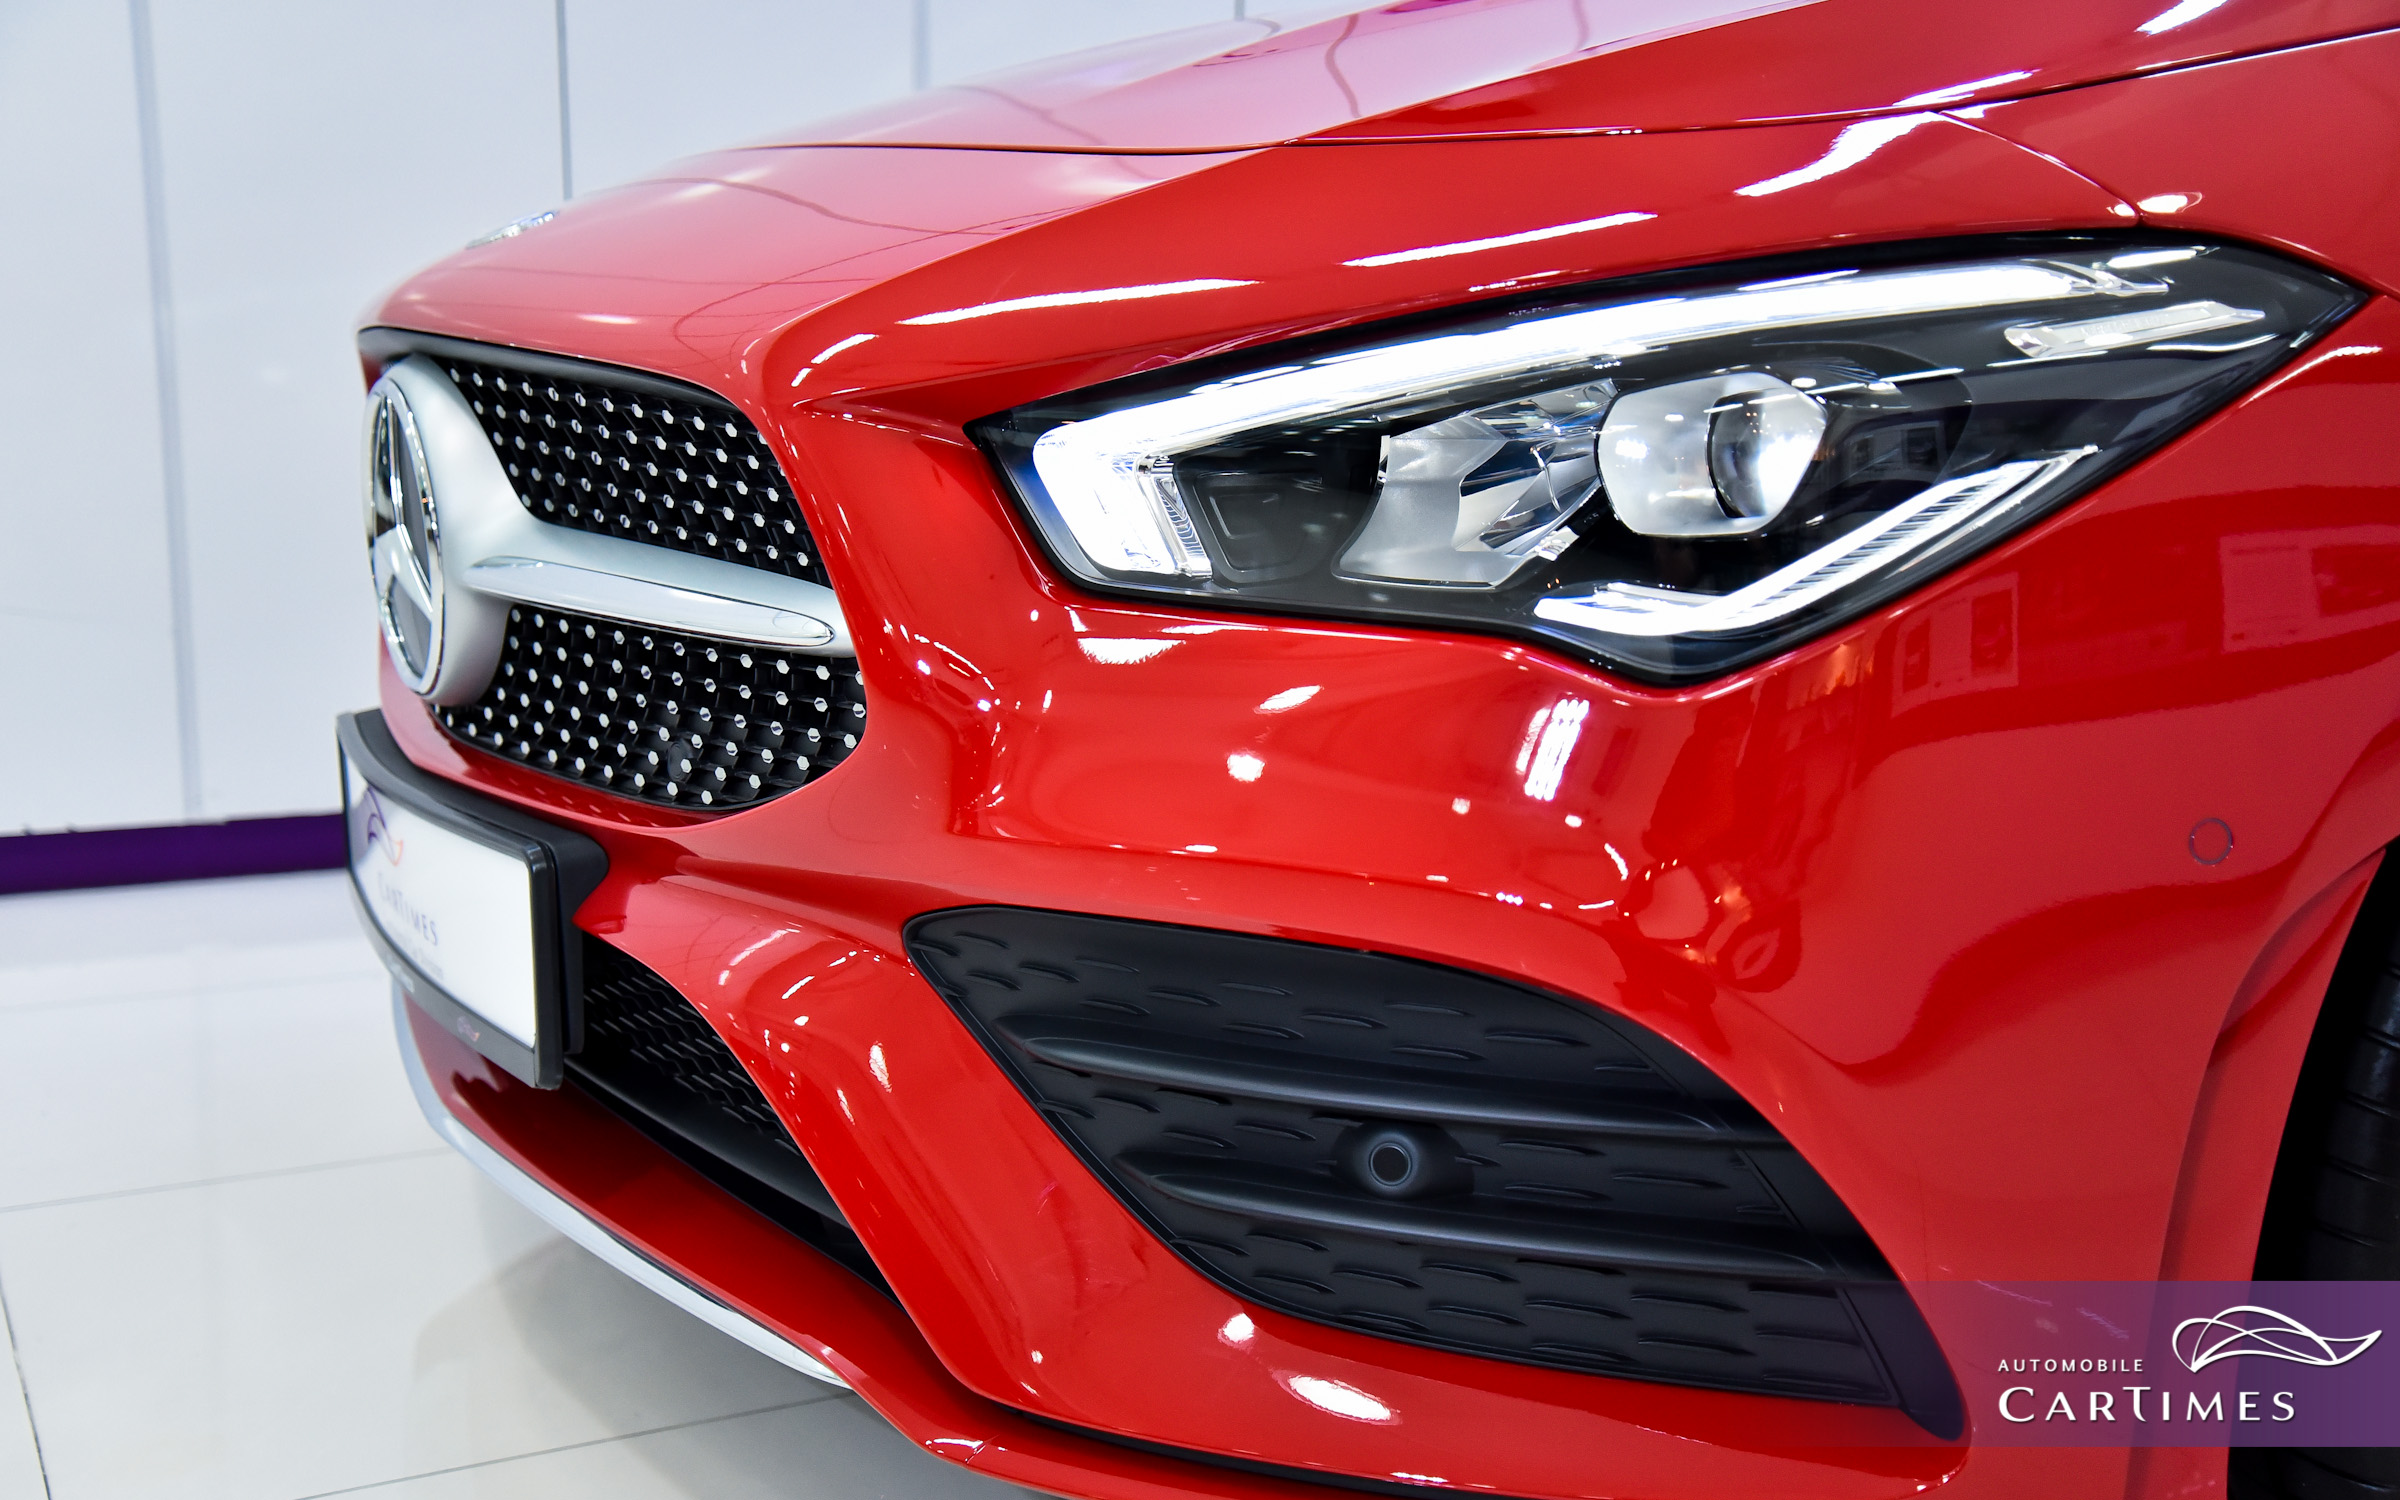 2019 Mercedes Benz CLA Class | Mercedes Benz 2019 | New release / Review Car Tips